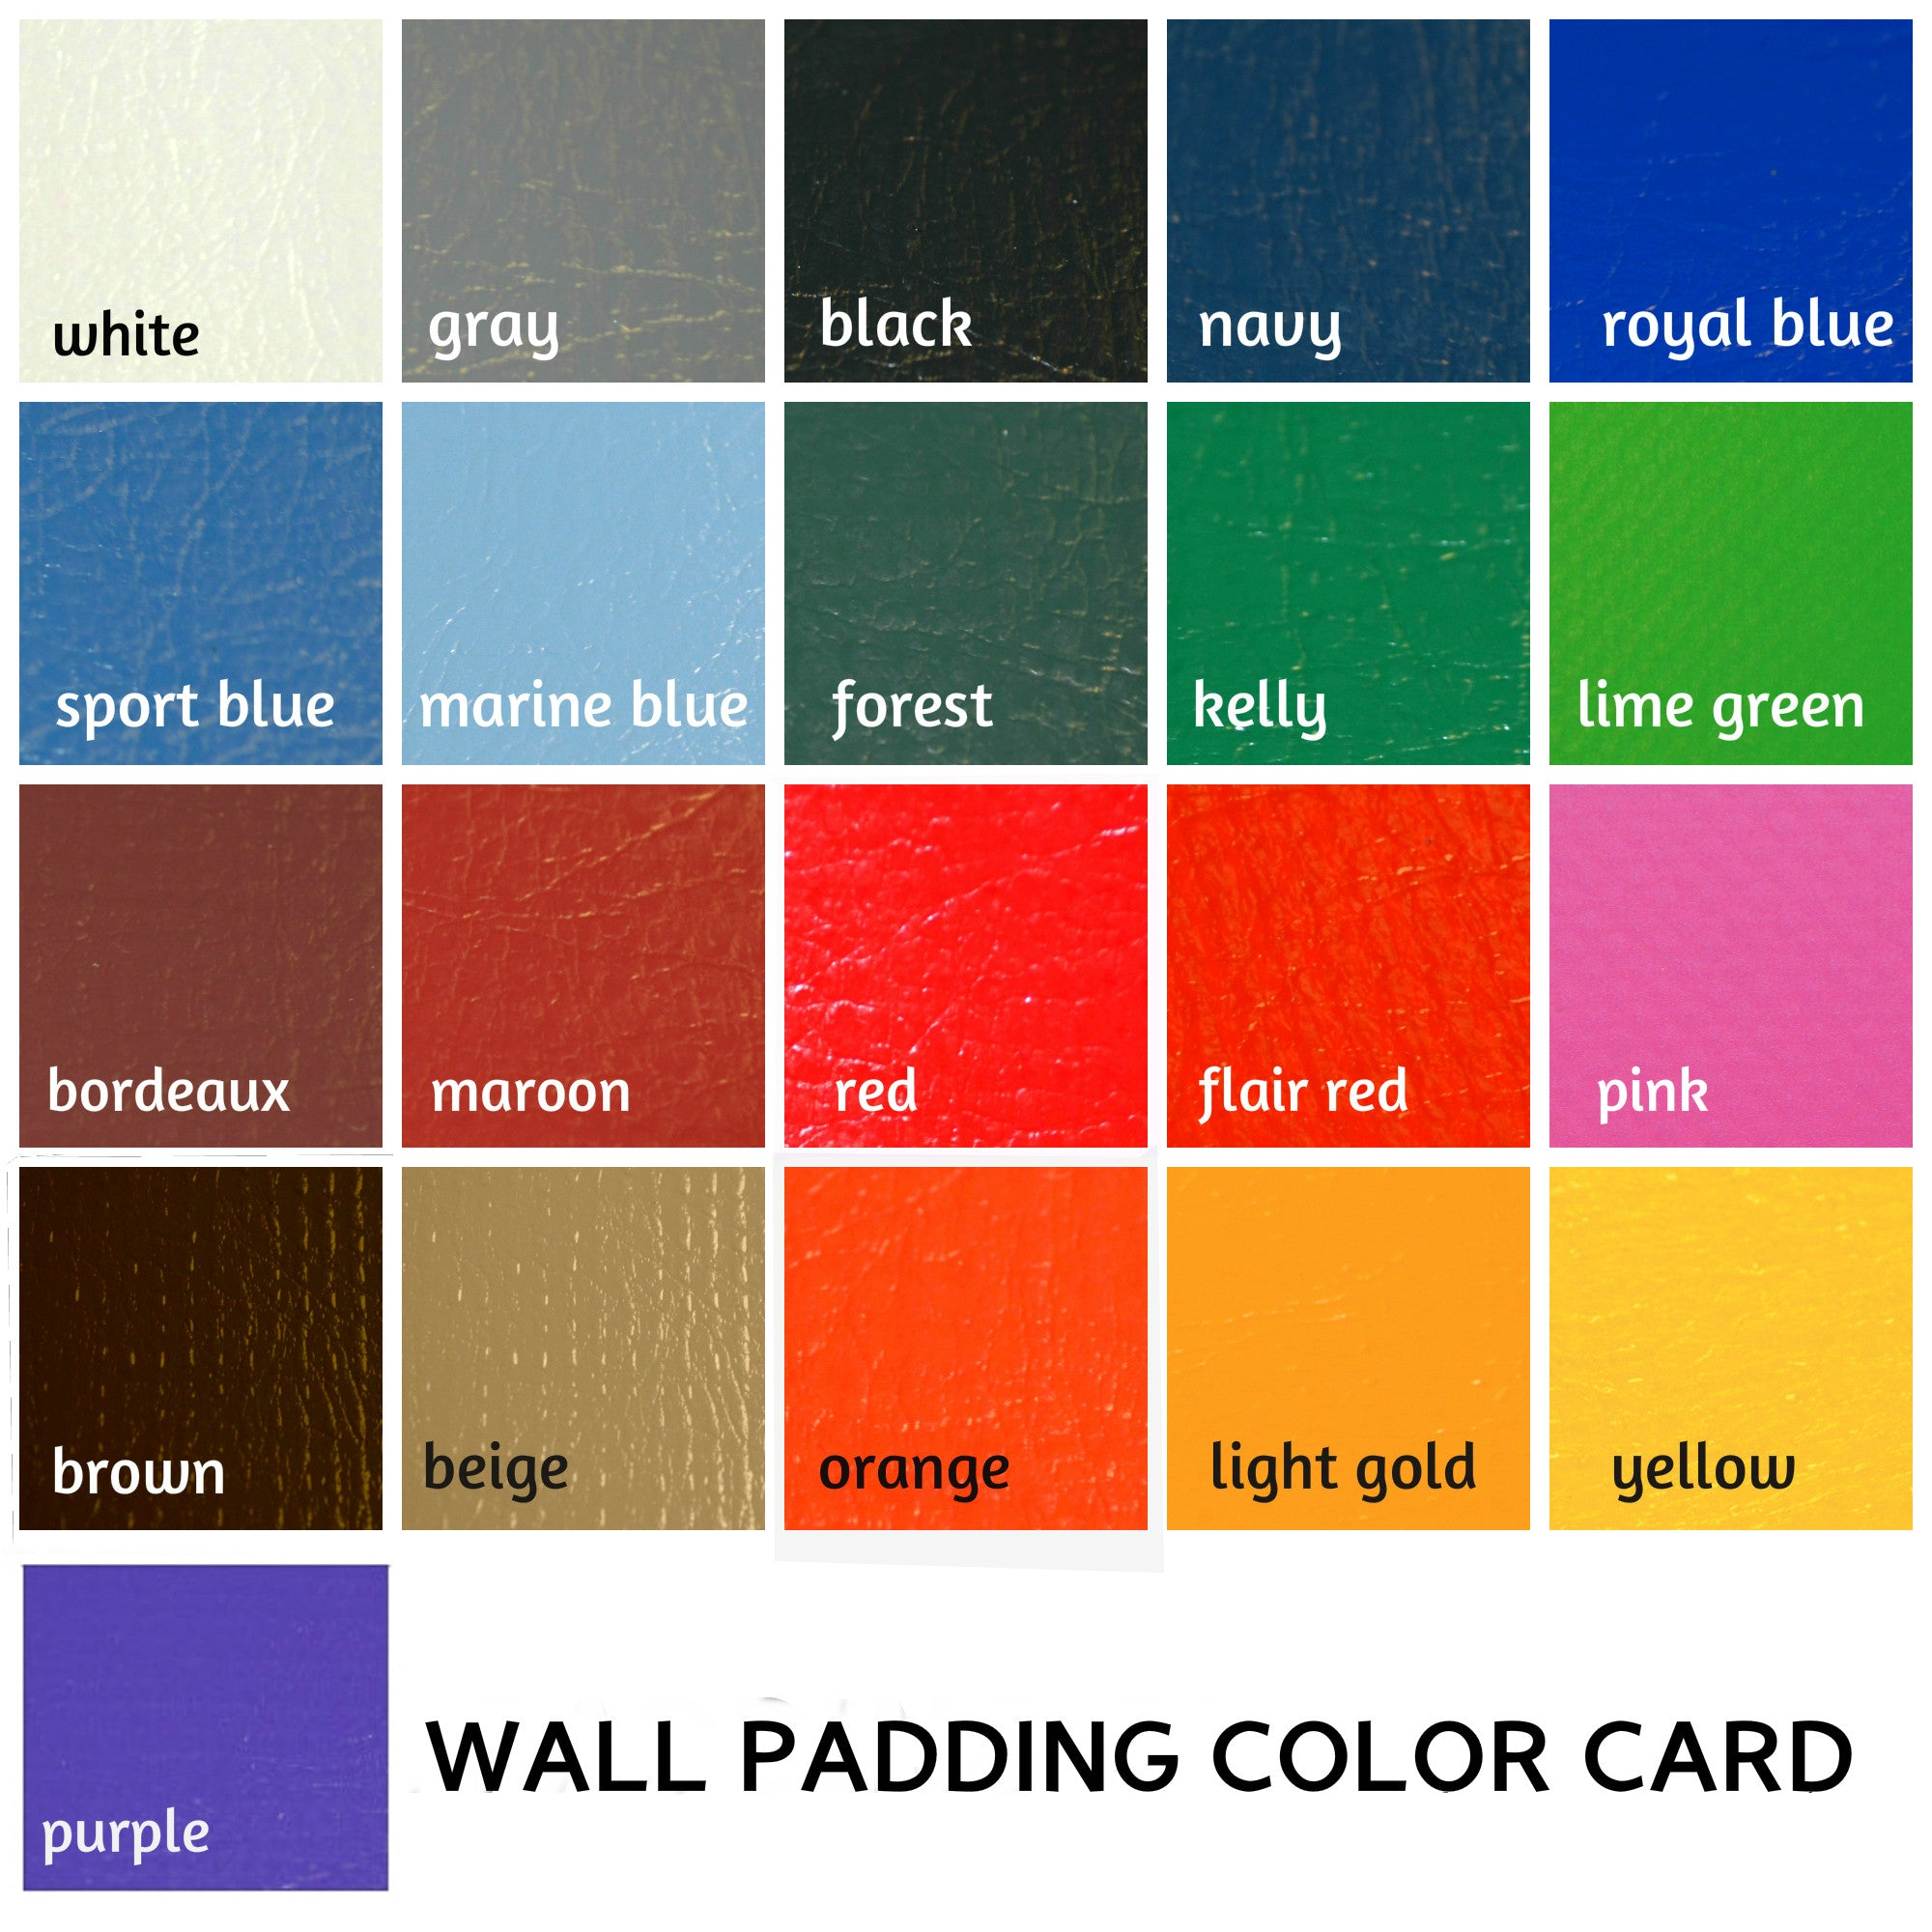 14 oz vinyl color chart